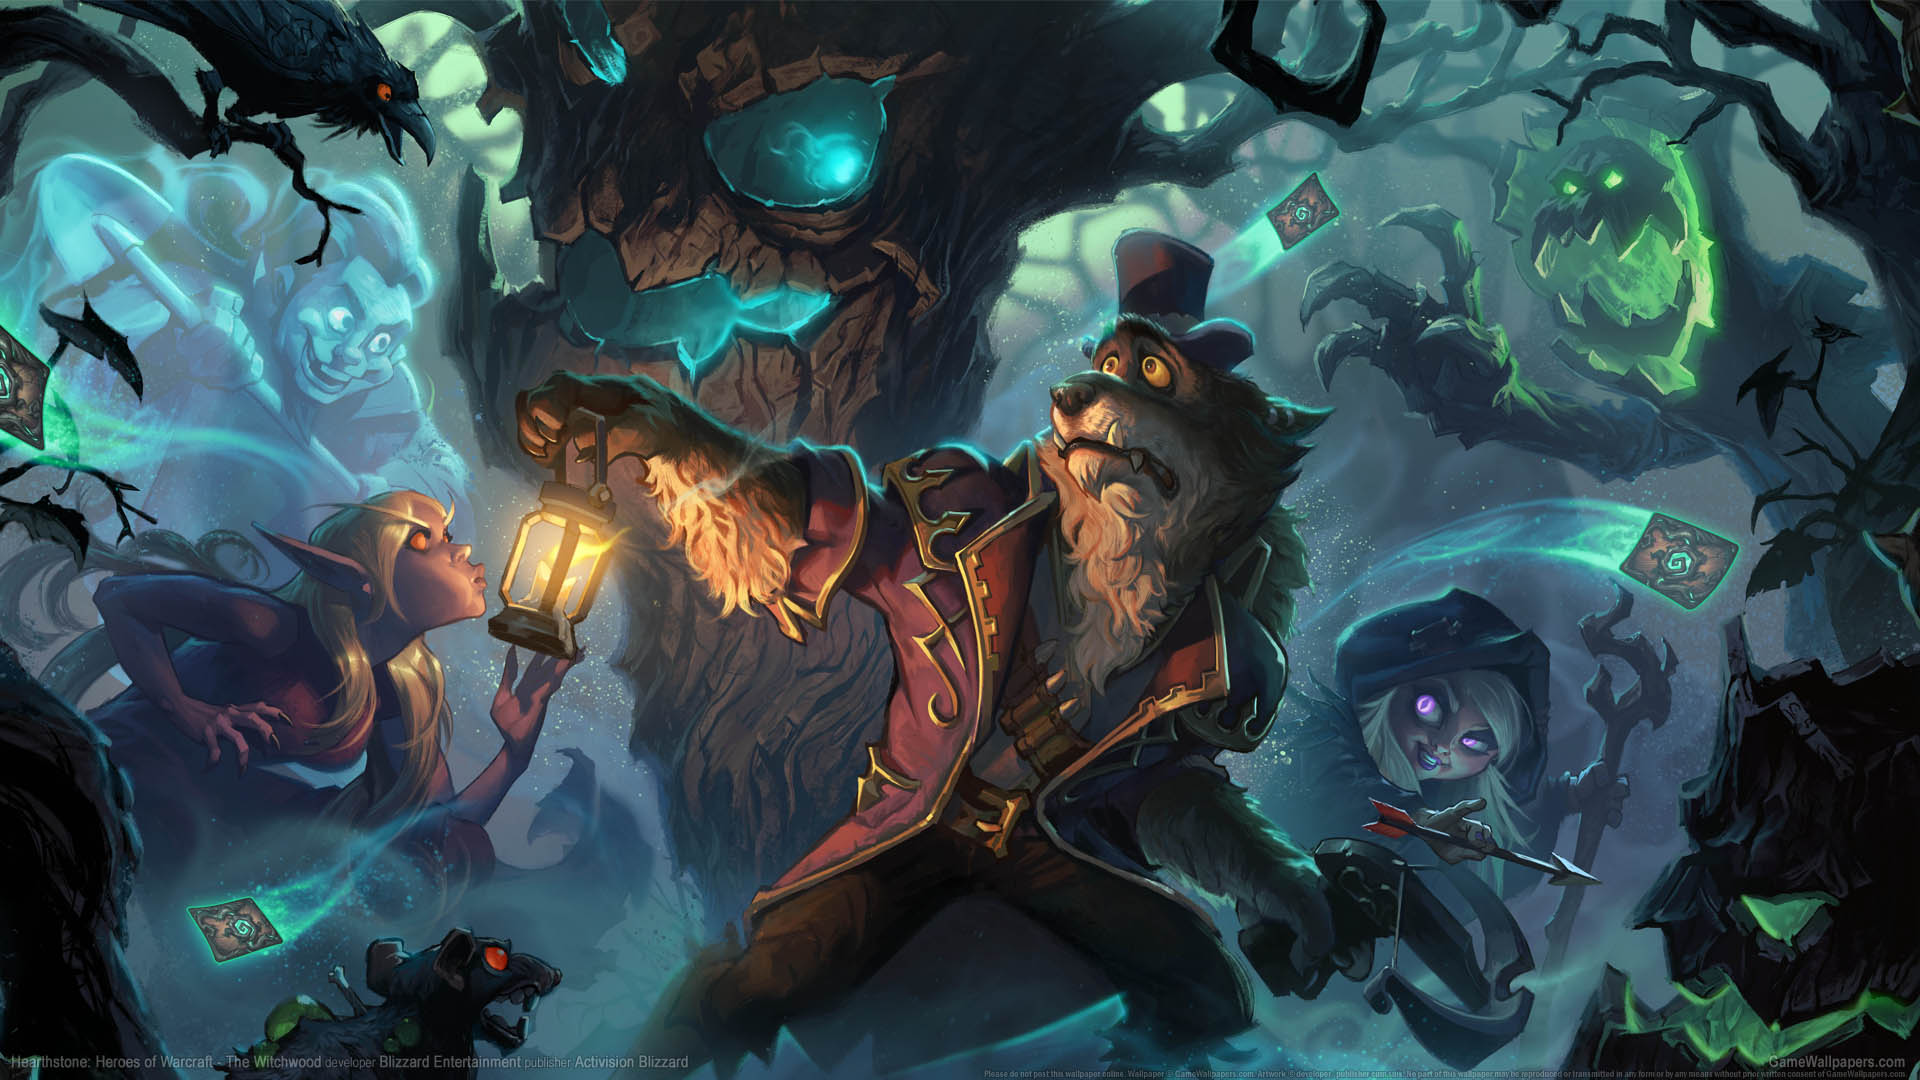 Hearthstone: Heroes of Warcraft - The Witchwood wallpaper 01 1920x1080